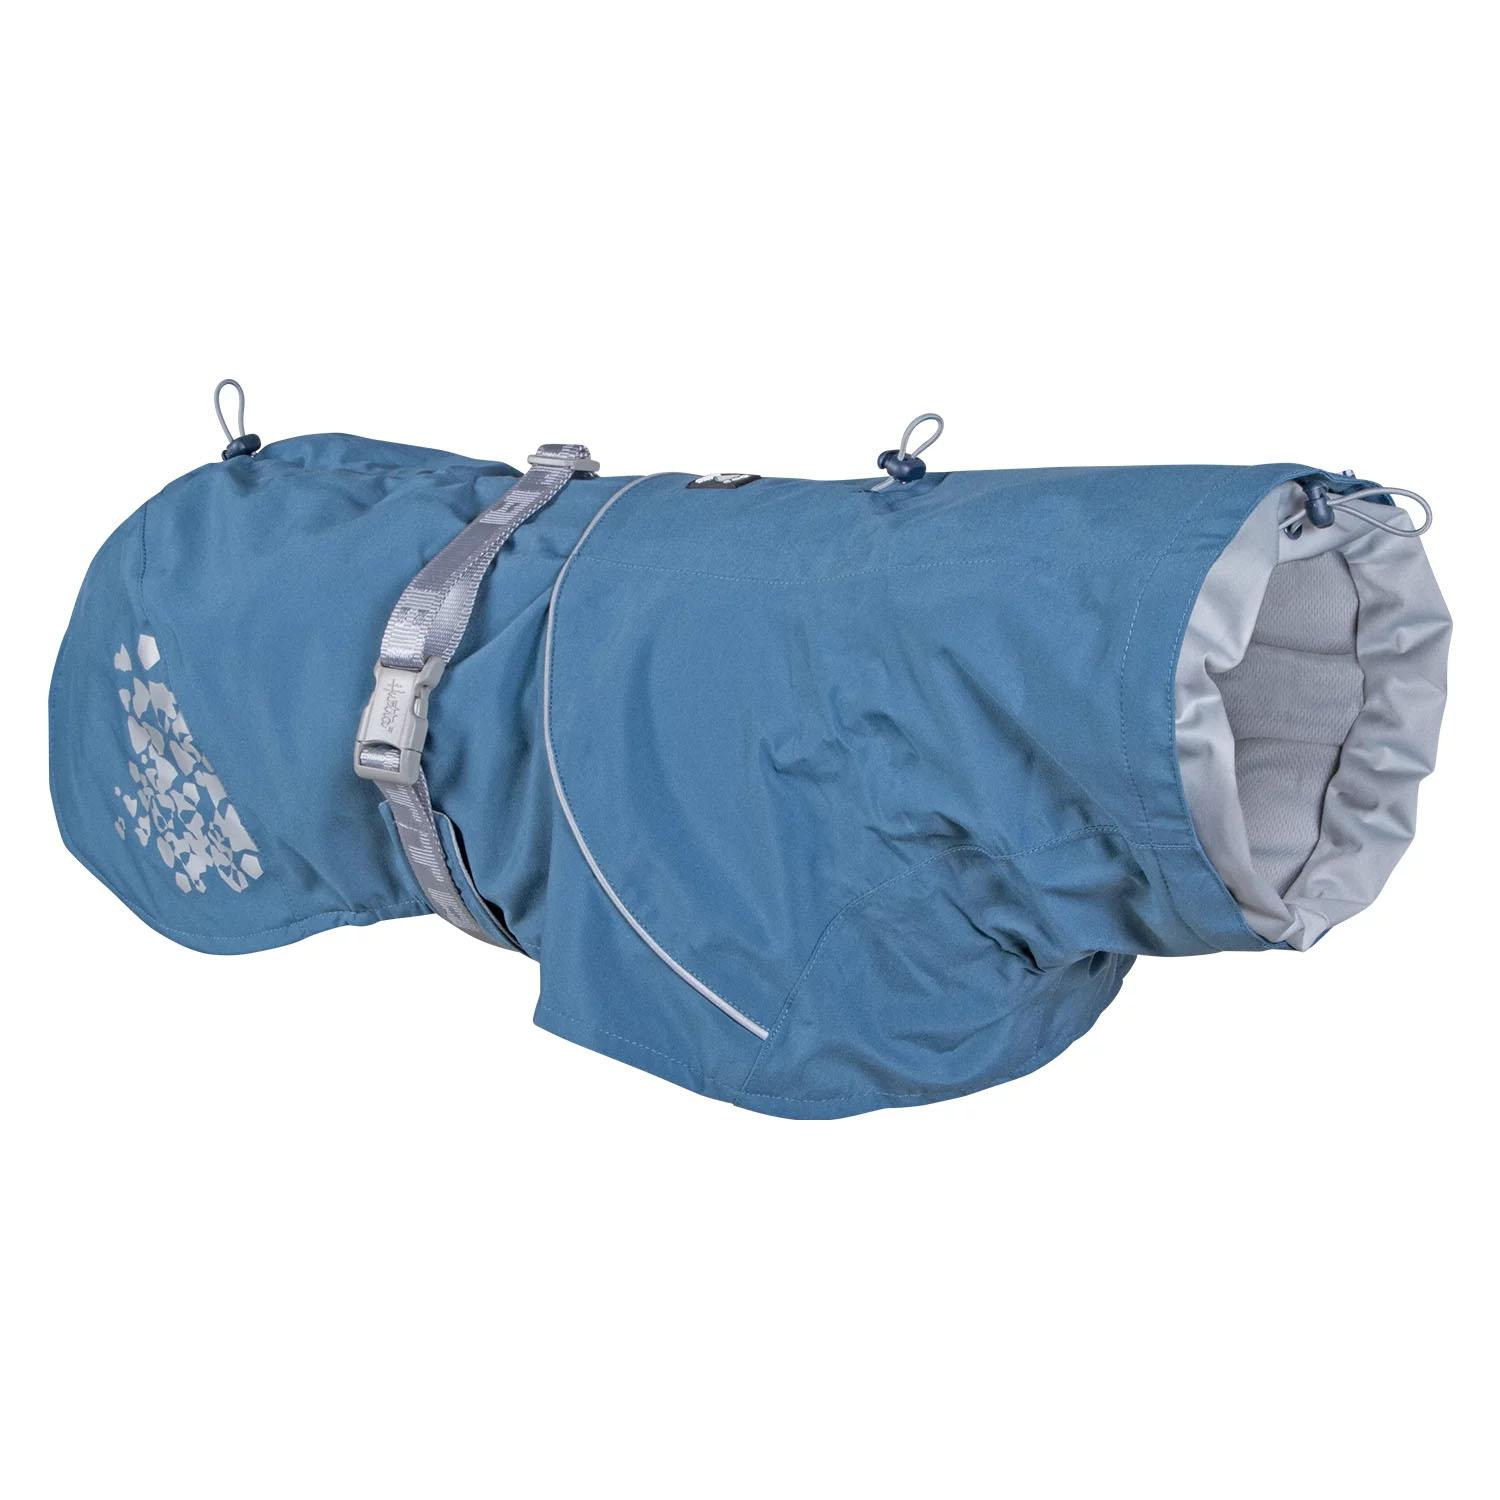 Hurtta Monsoon Dog Coat - Bilberry